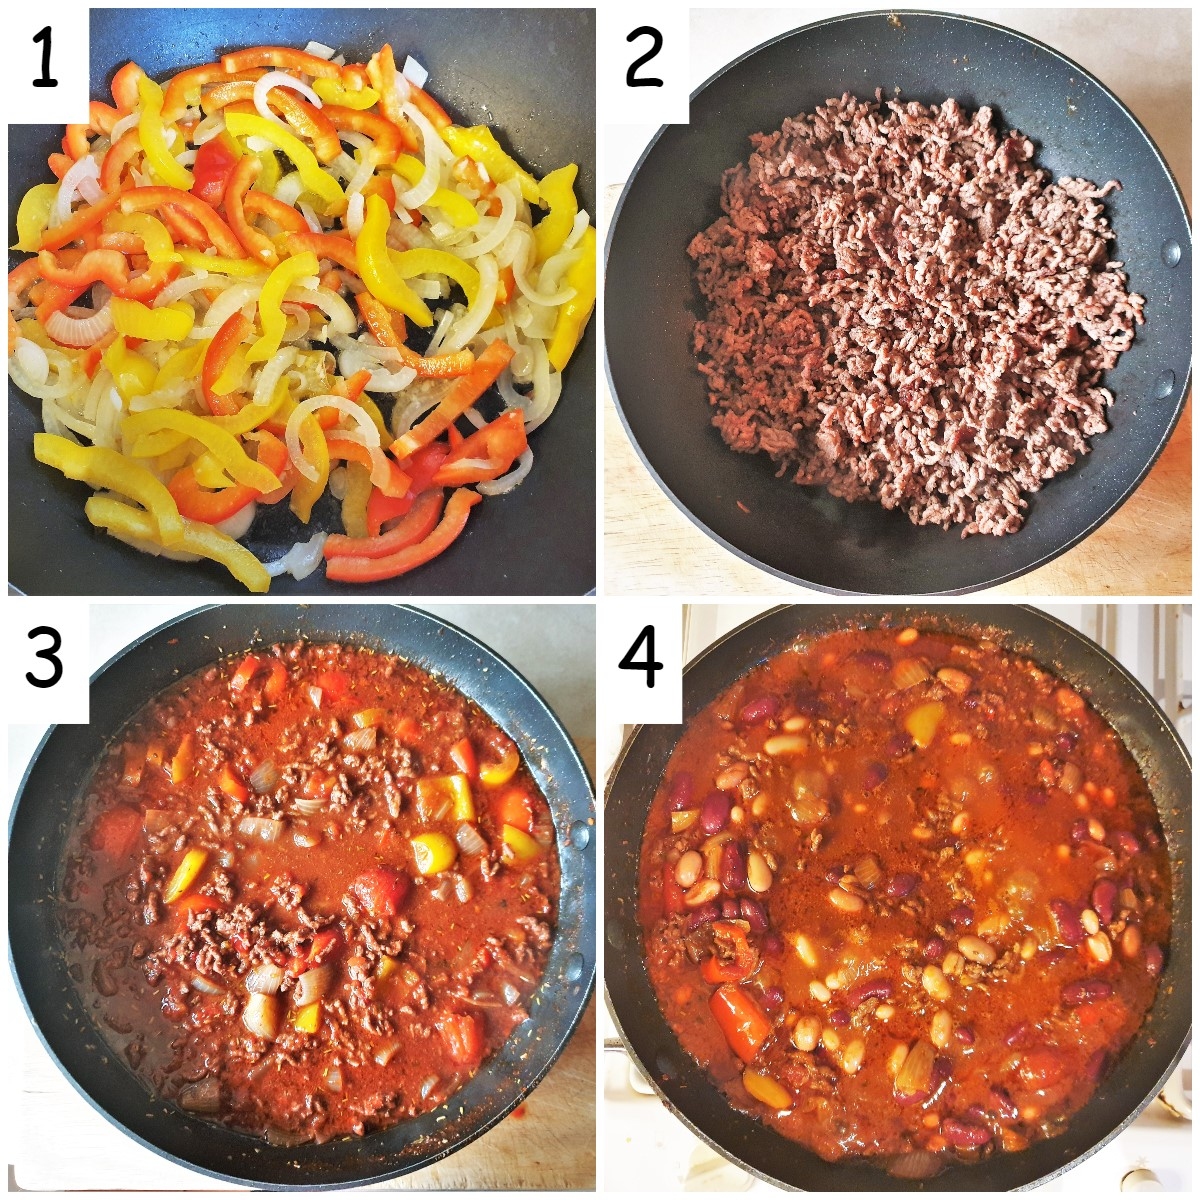 Steps for making chilli con carne